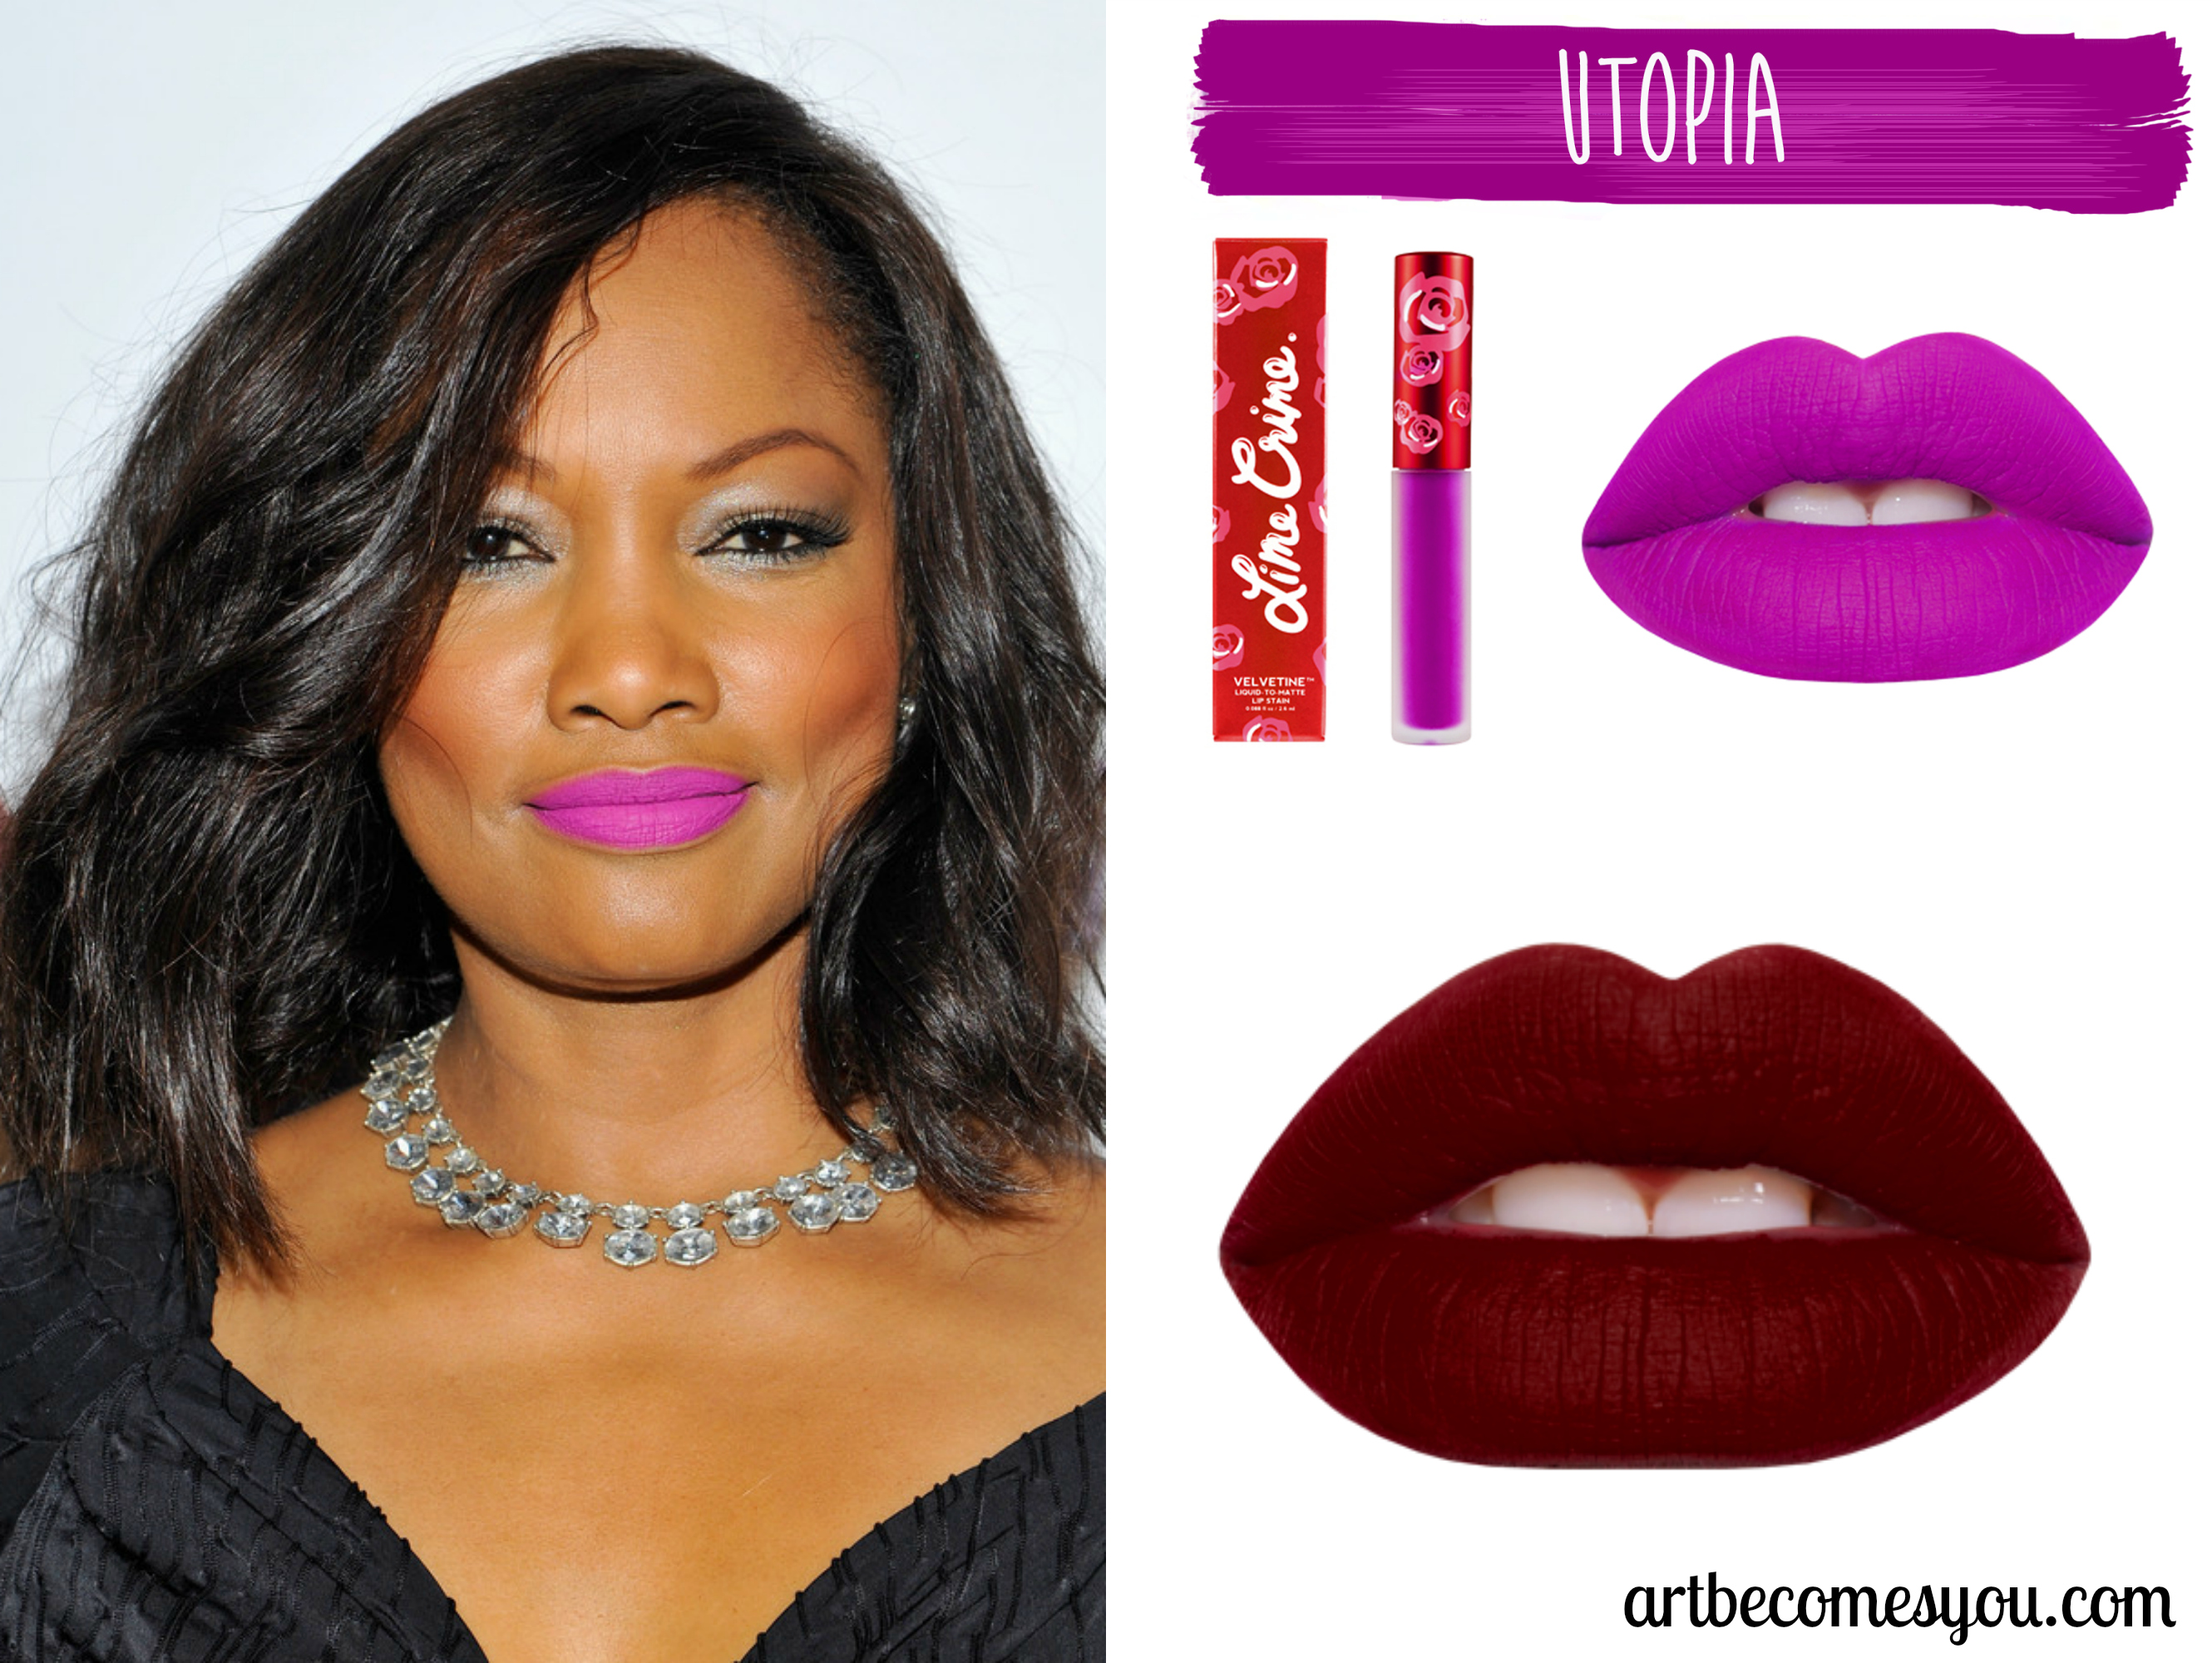 Beauty Must Have Lime Crime Velvetines Lip Stain Art Becomes You All Shade Utopia